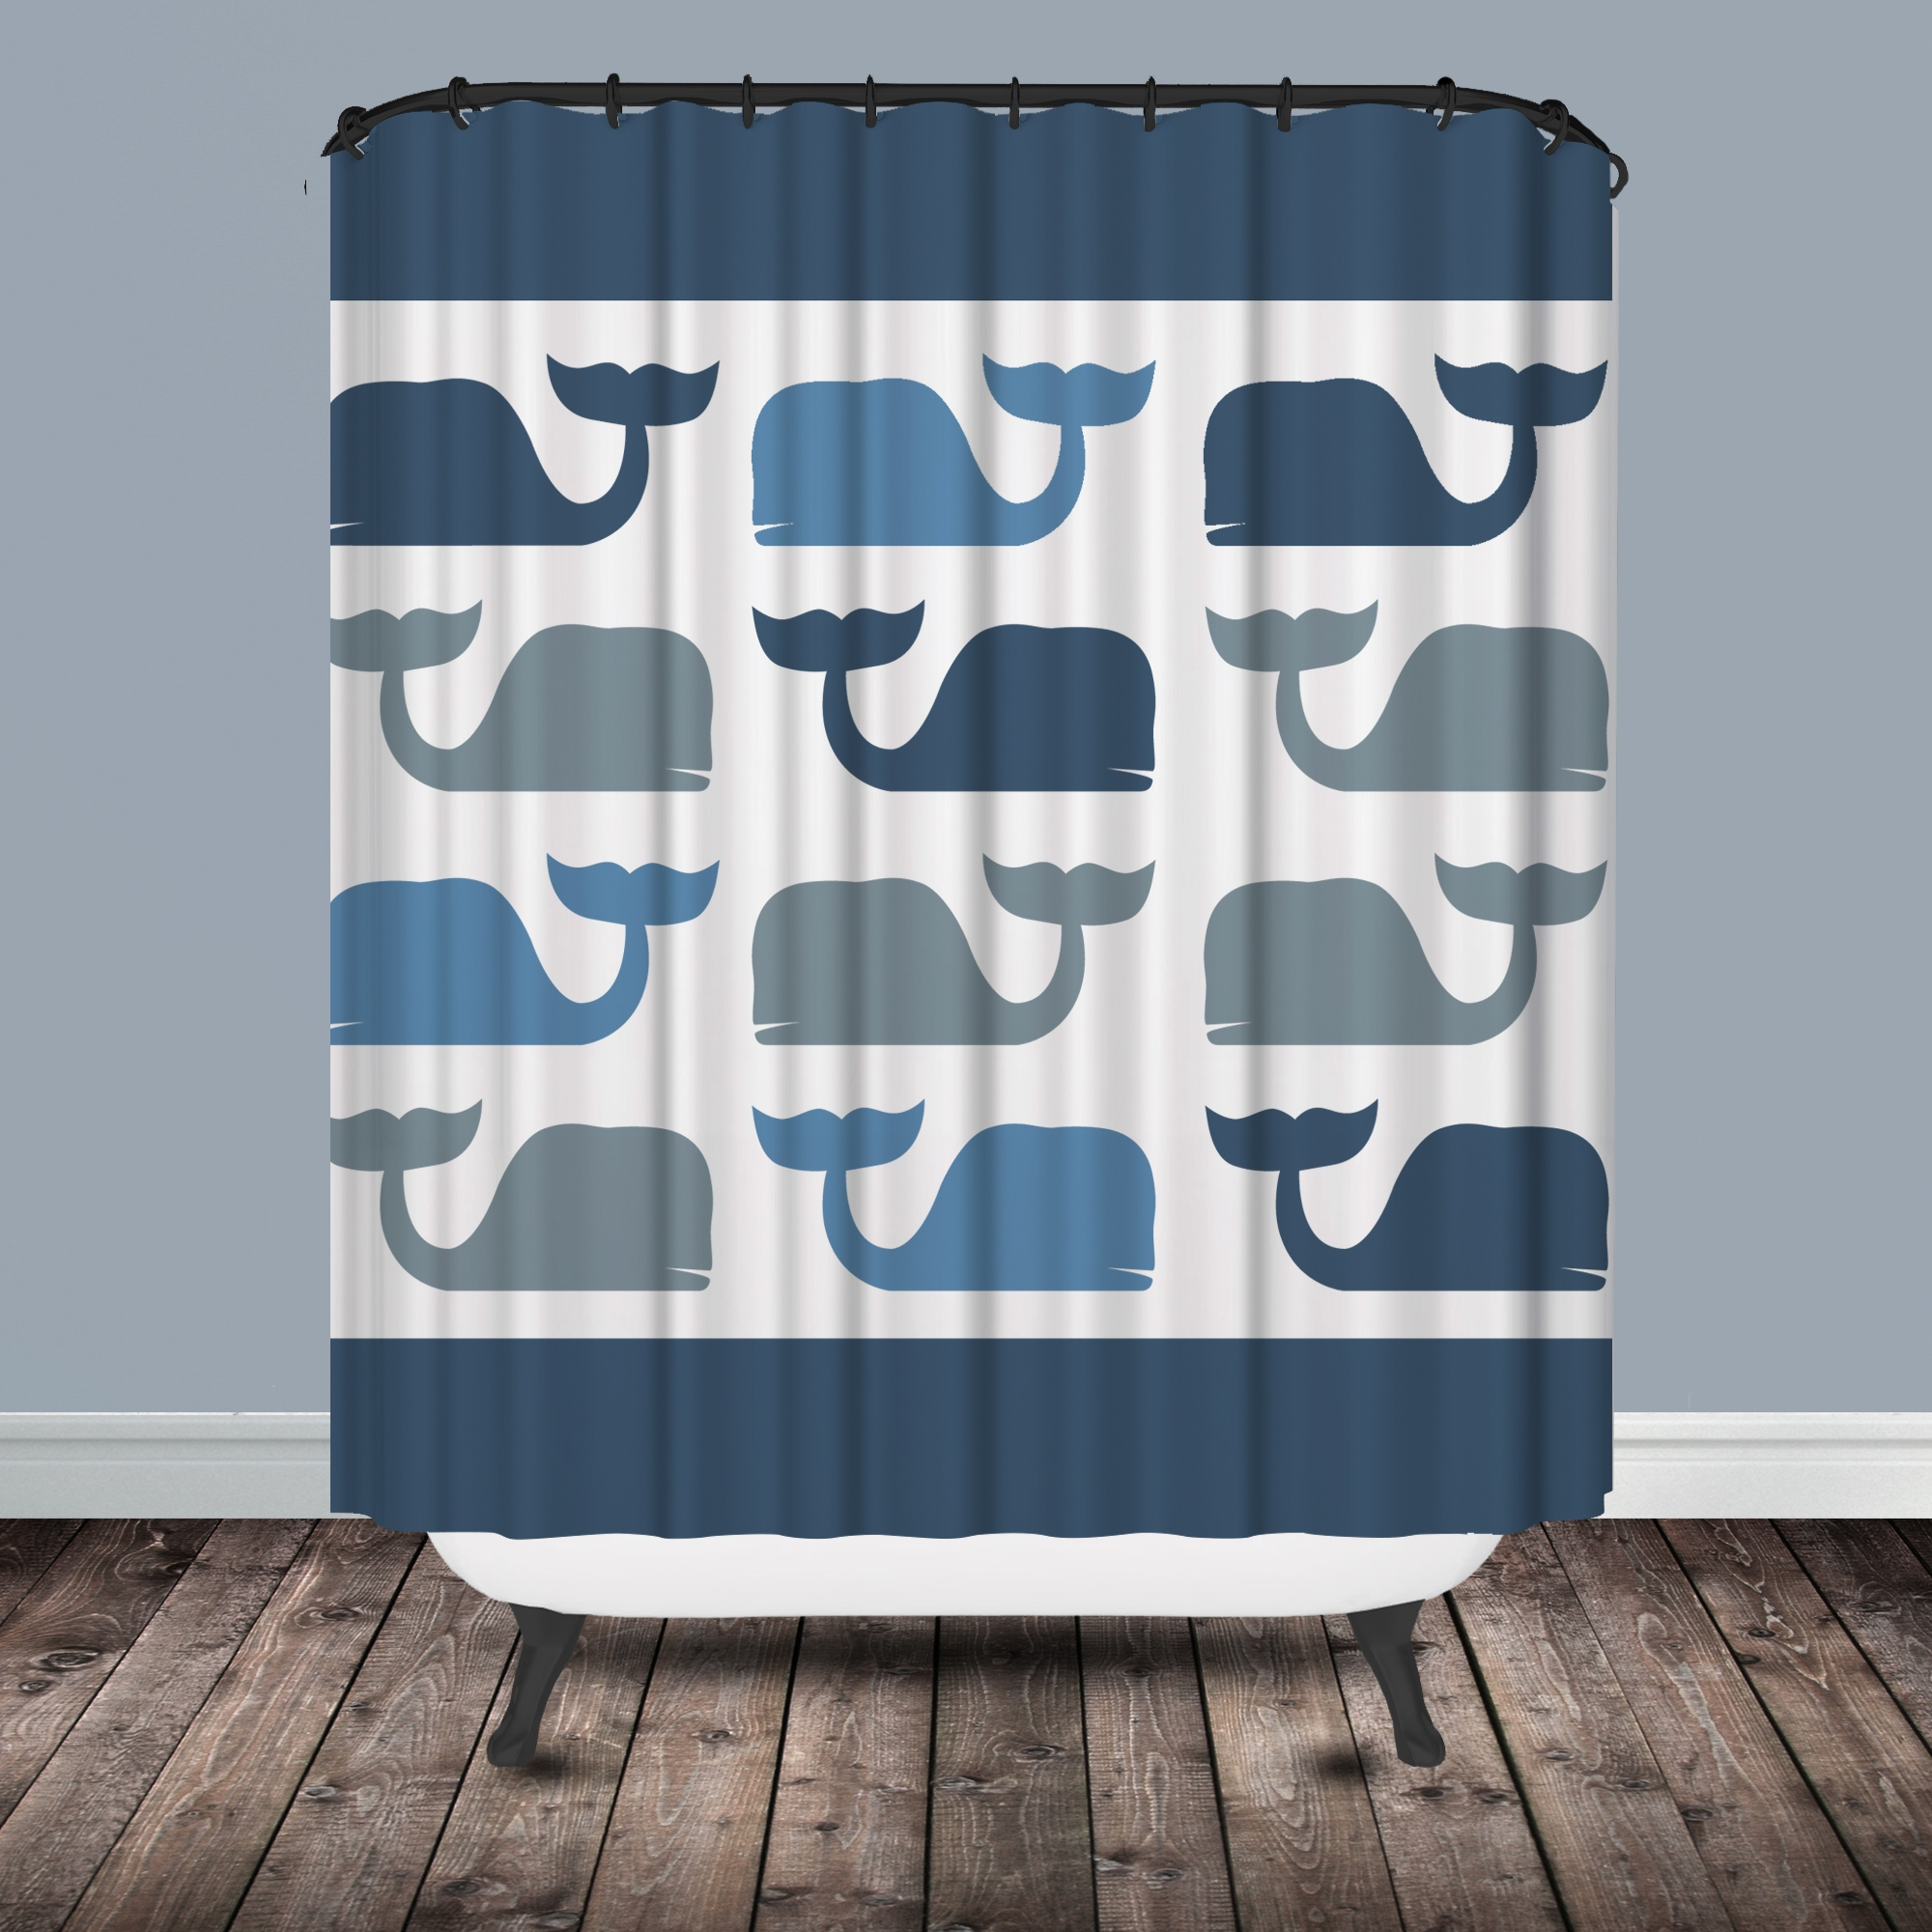 Whale Shower Curtain Rings • Shower Curtains Ideas